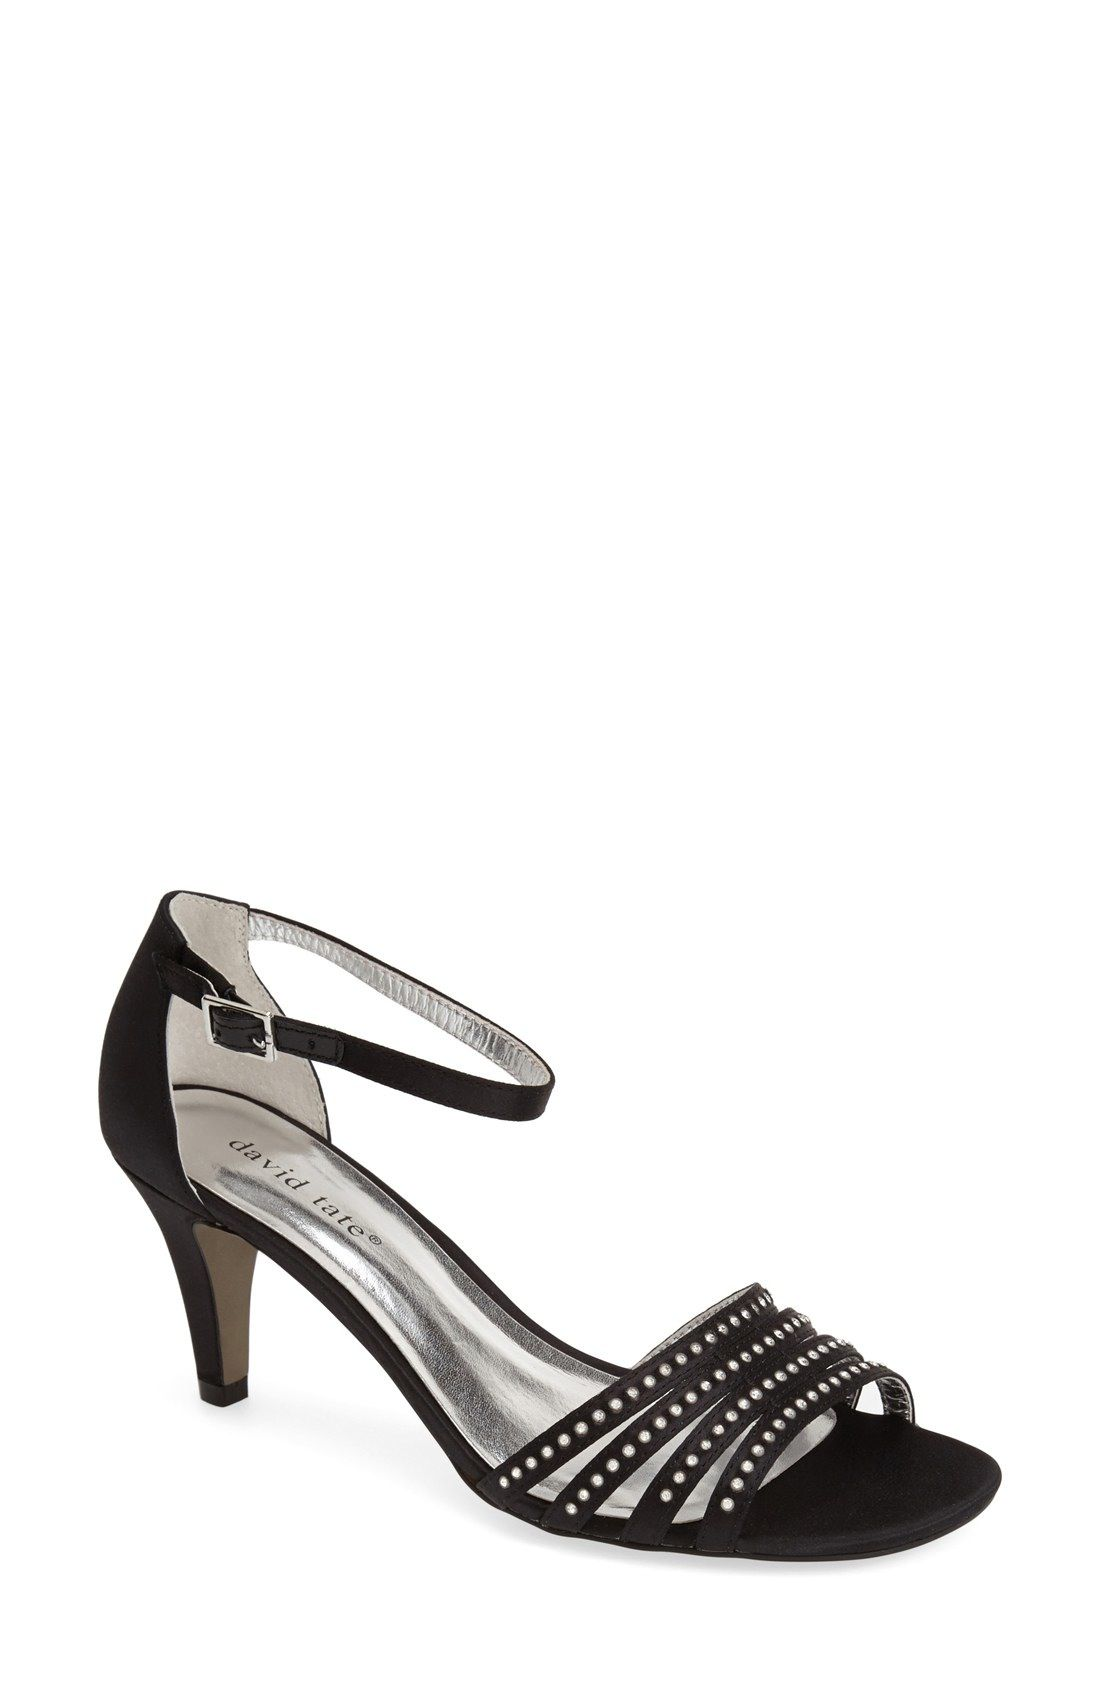 c2e27c473d71 David Tate  Terra  Ankle Strap Sandal (Women) available at  Nordstrom